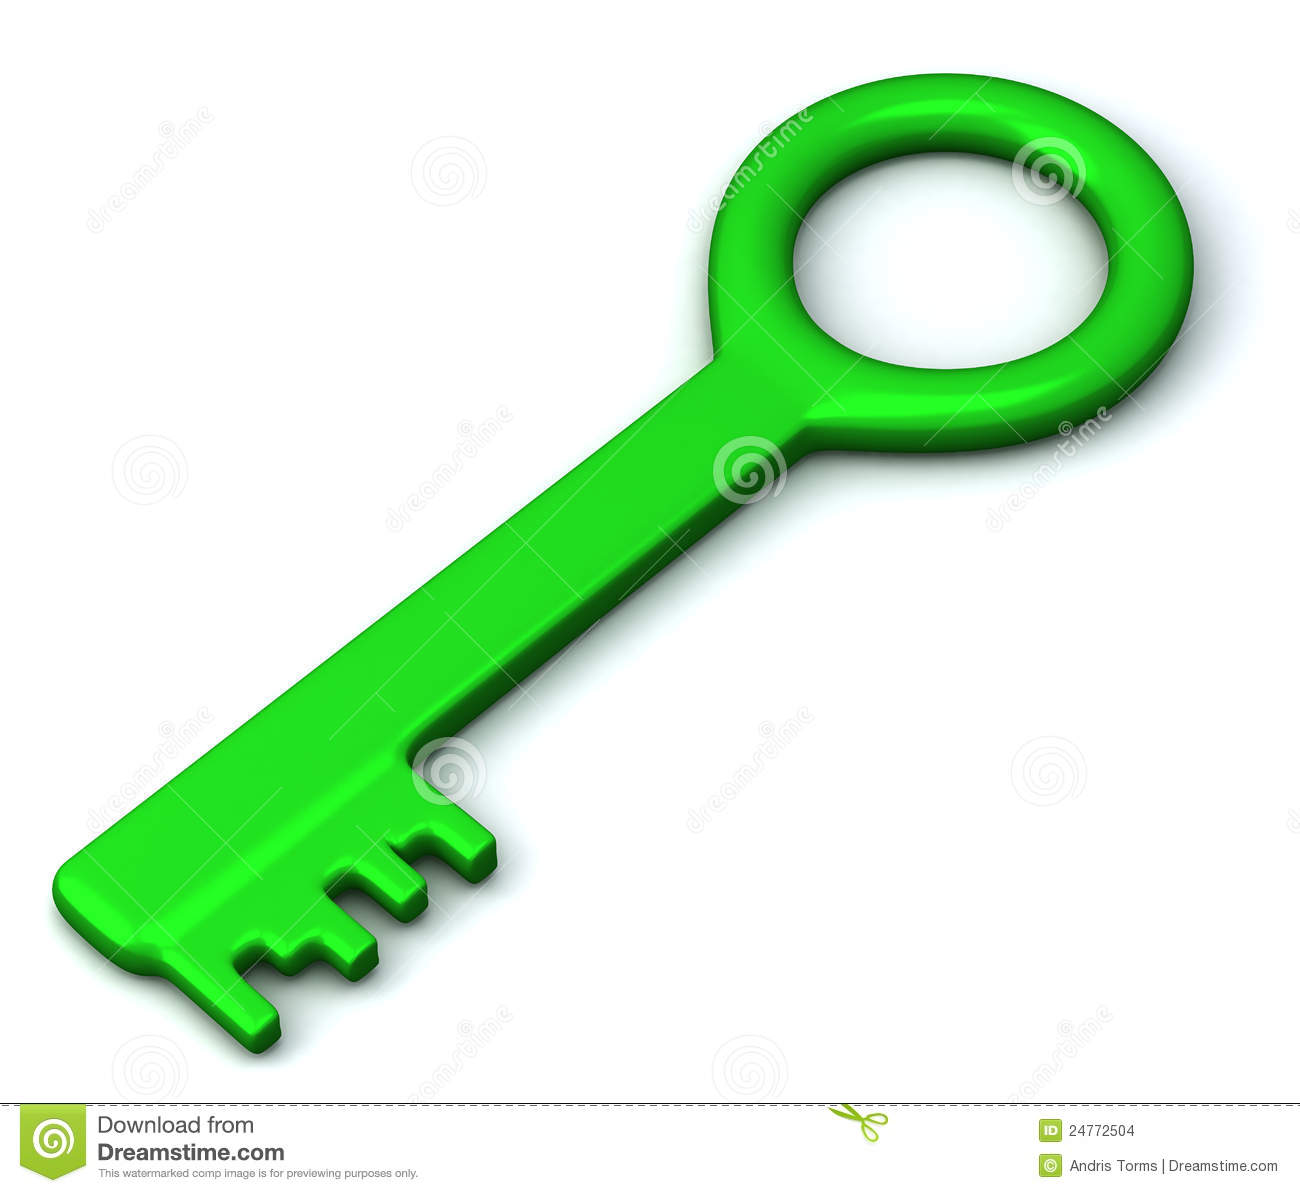 Free Home Plans Green Key Icon 3d Stock Illustration Illustration Of Idea